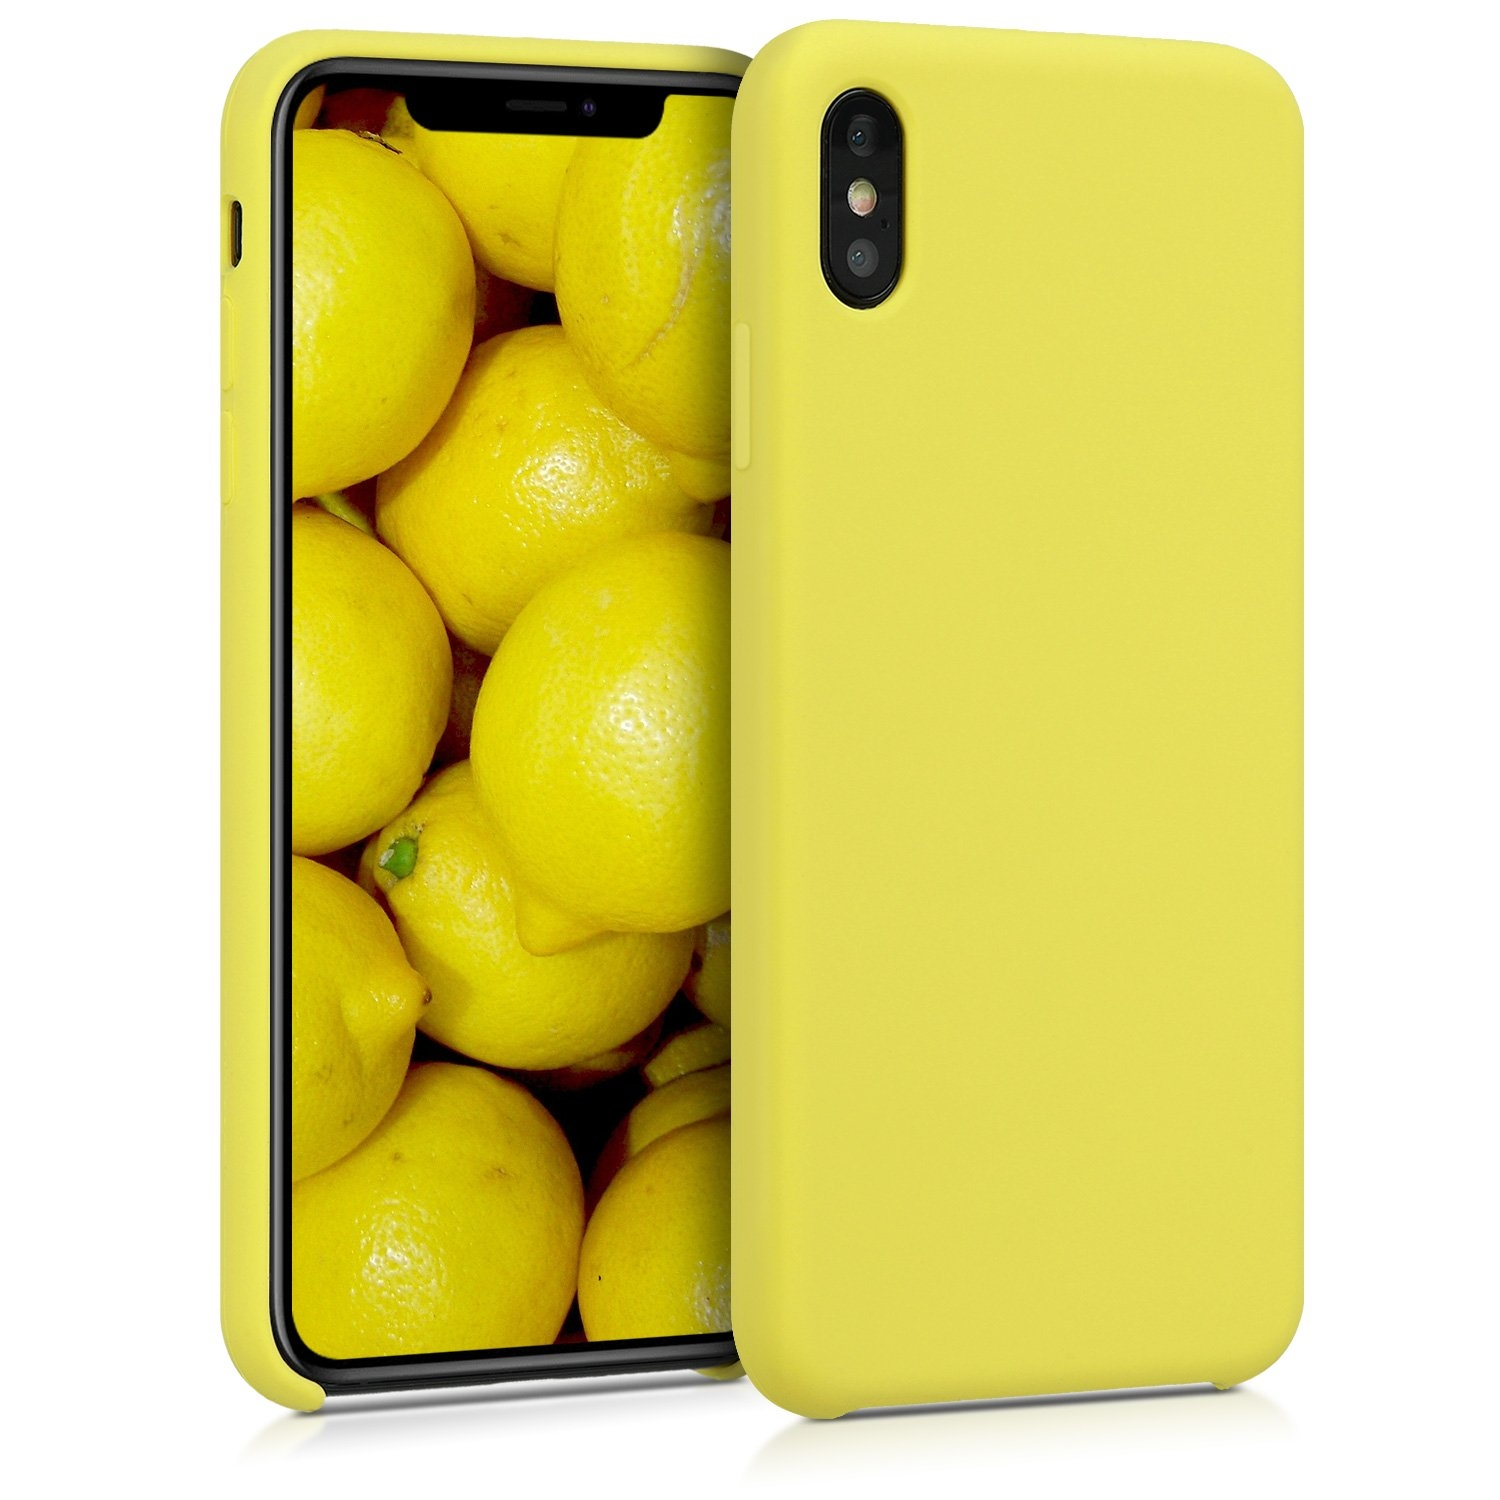 KW Θήκη Σιλικόνης Apple iPhone XS Max - Soft Flexible Rubber - Pastel Yellow (45909.30)